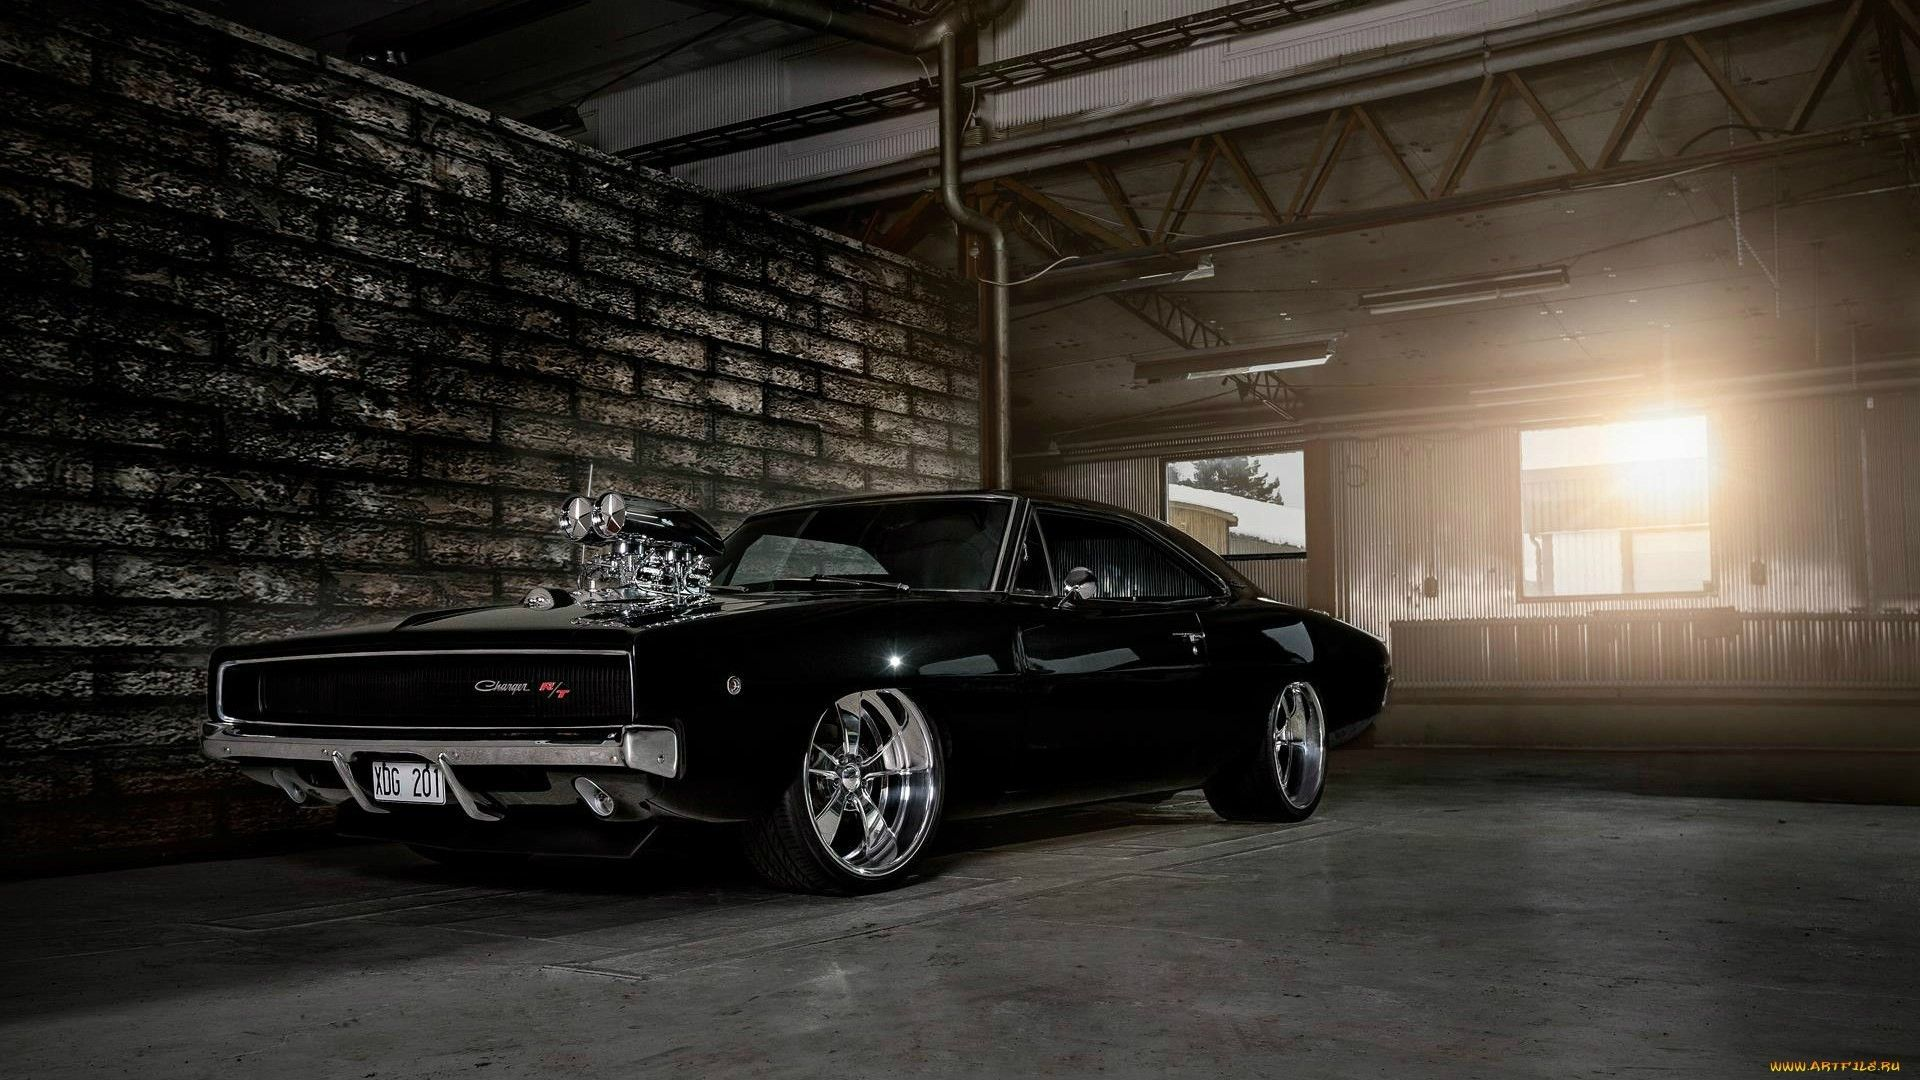 Image Result For Ultra Hd Muscle Car Wallpapers Dodge Charger Dodge Charger Rt 1968 Dodge Charger